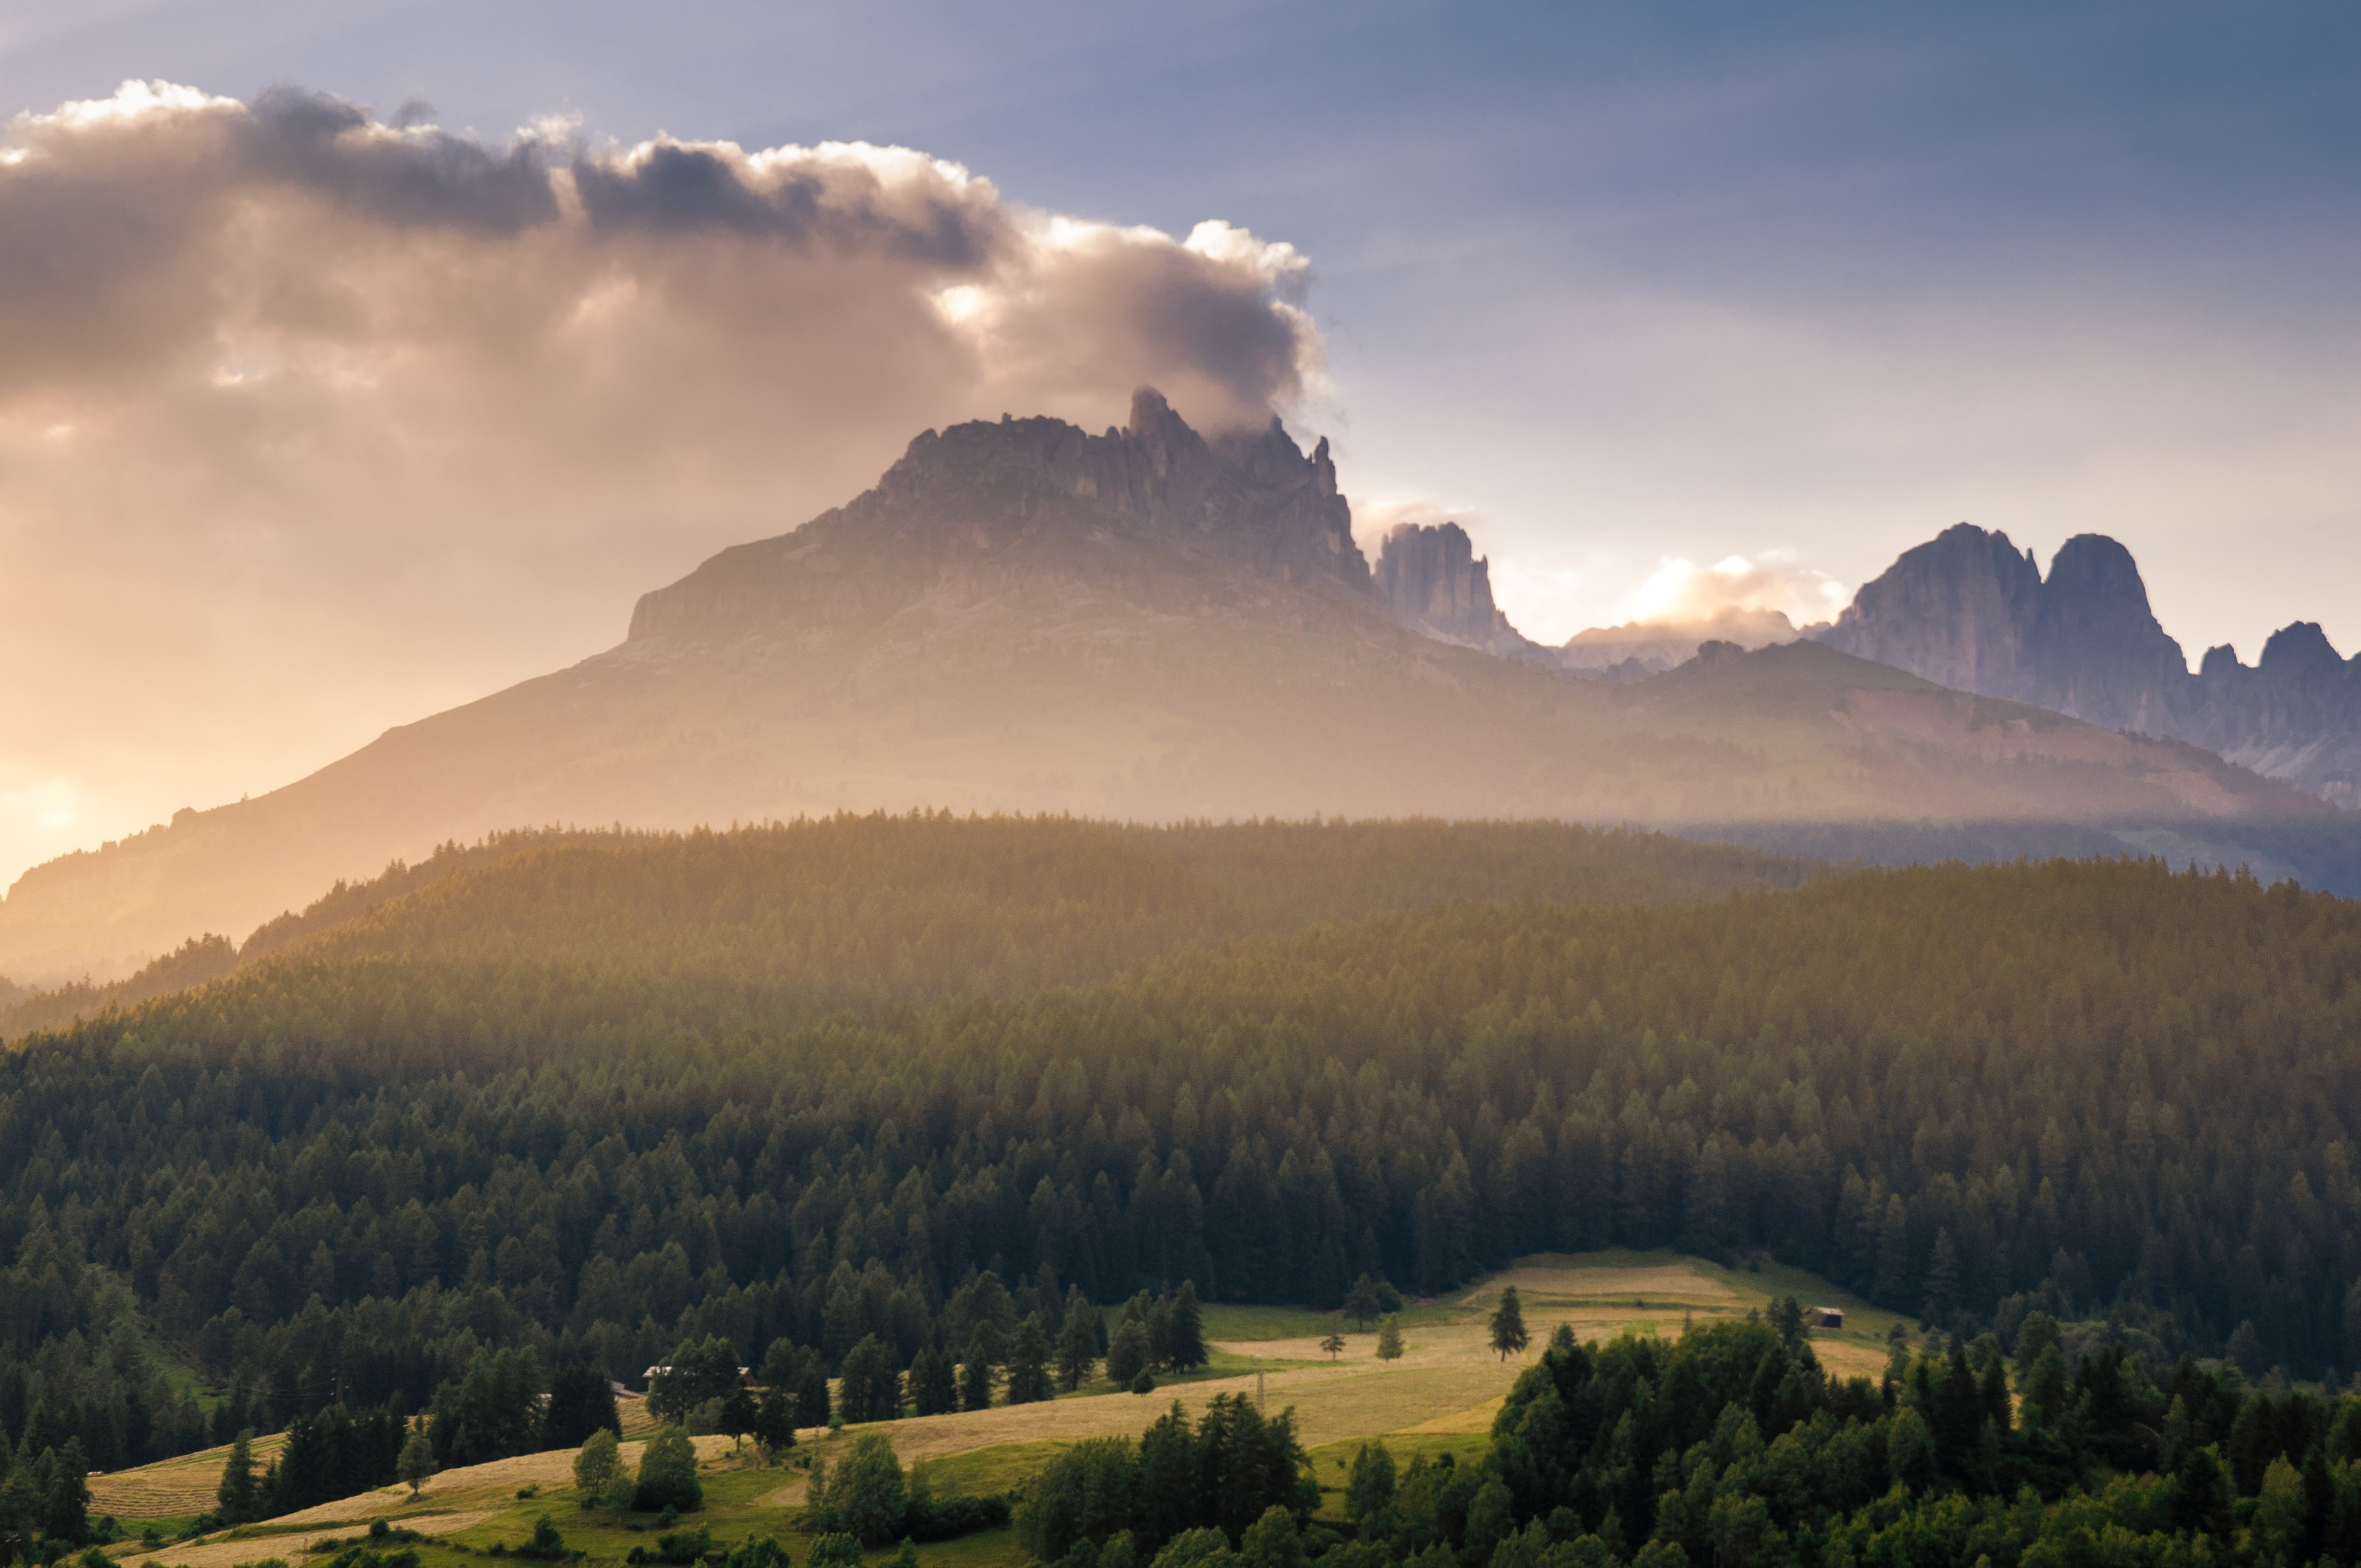 The trees, the mountains, and the clouds in the Dolomites